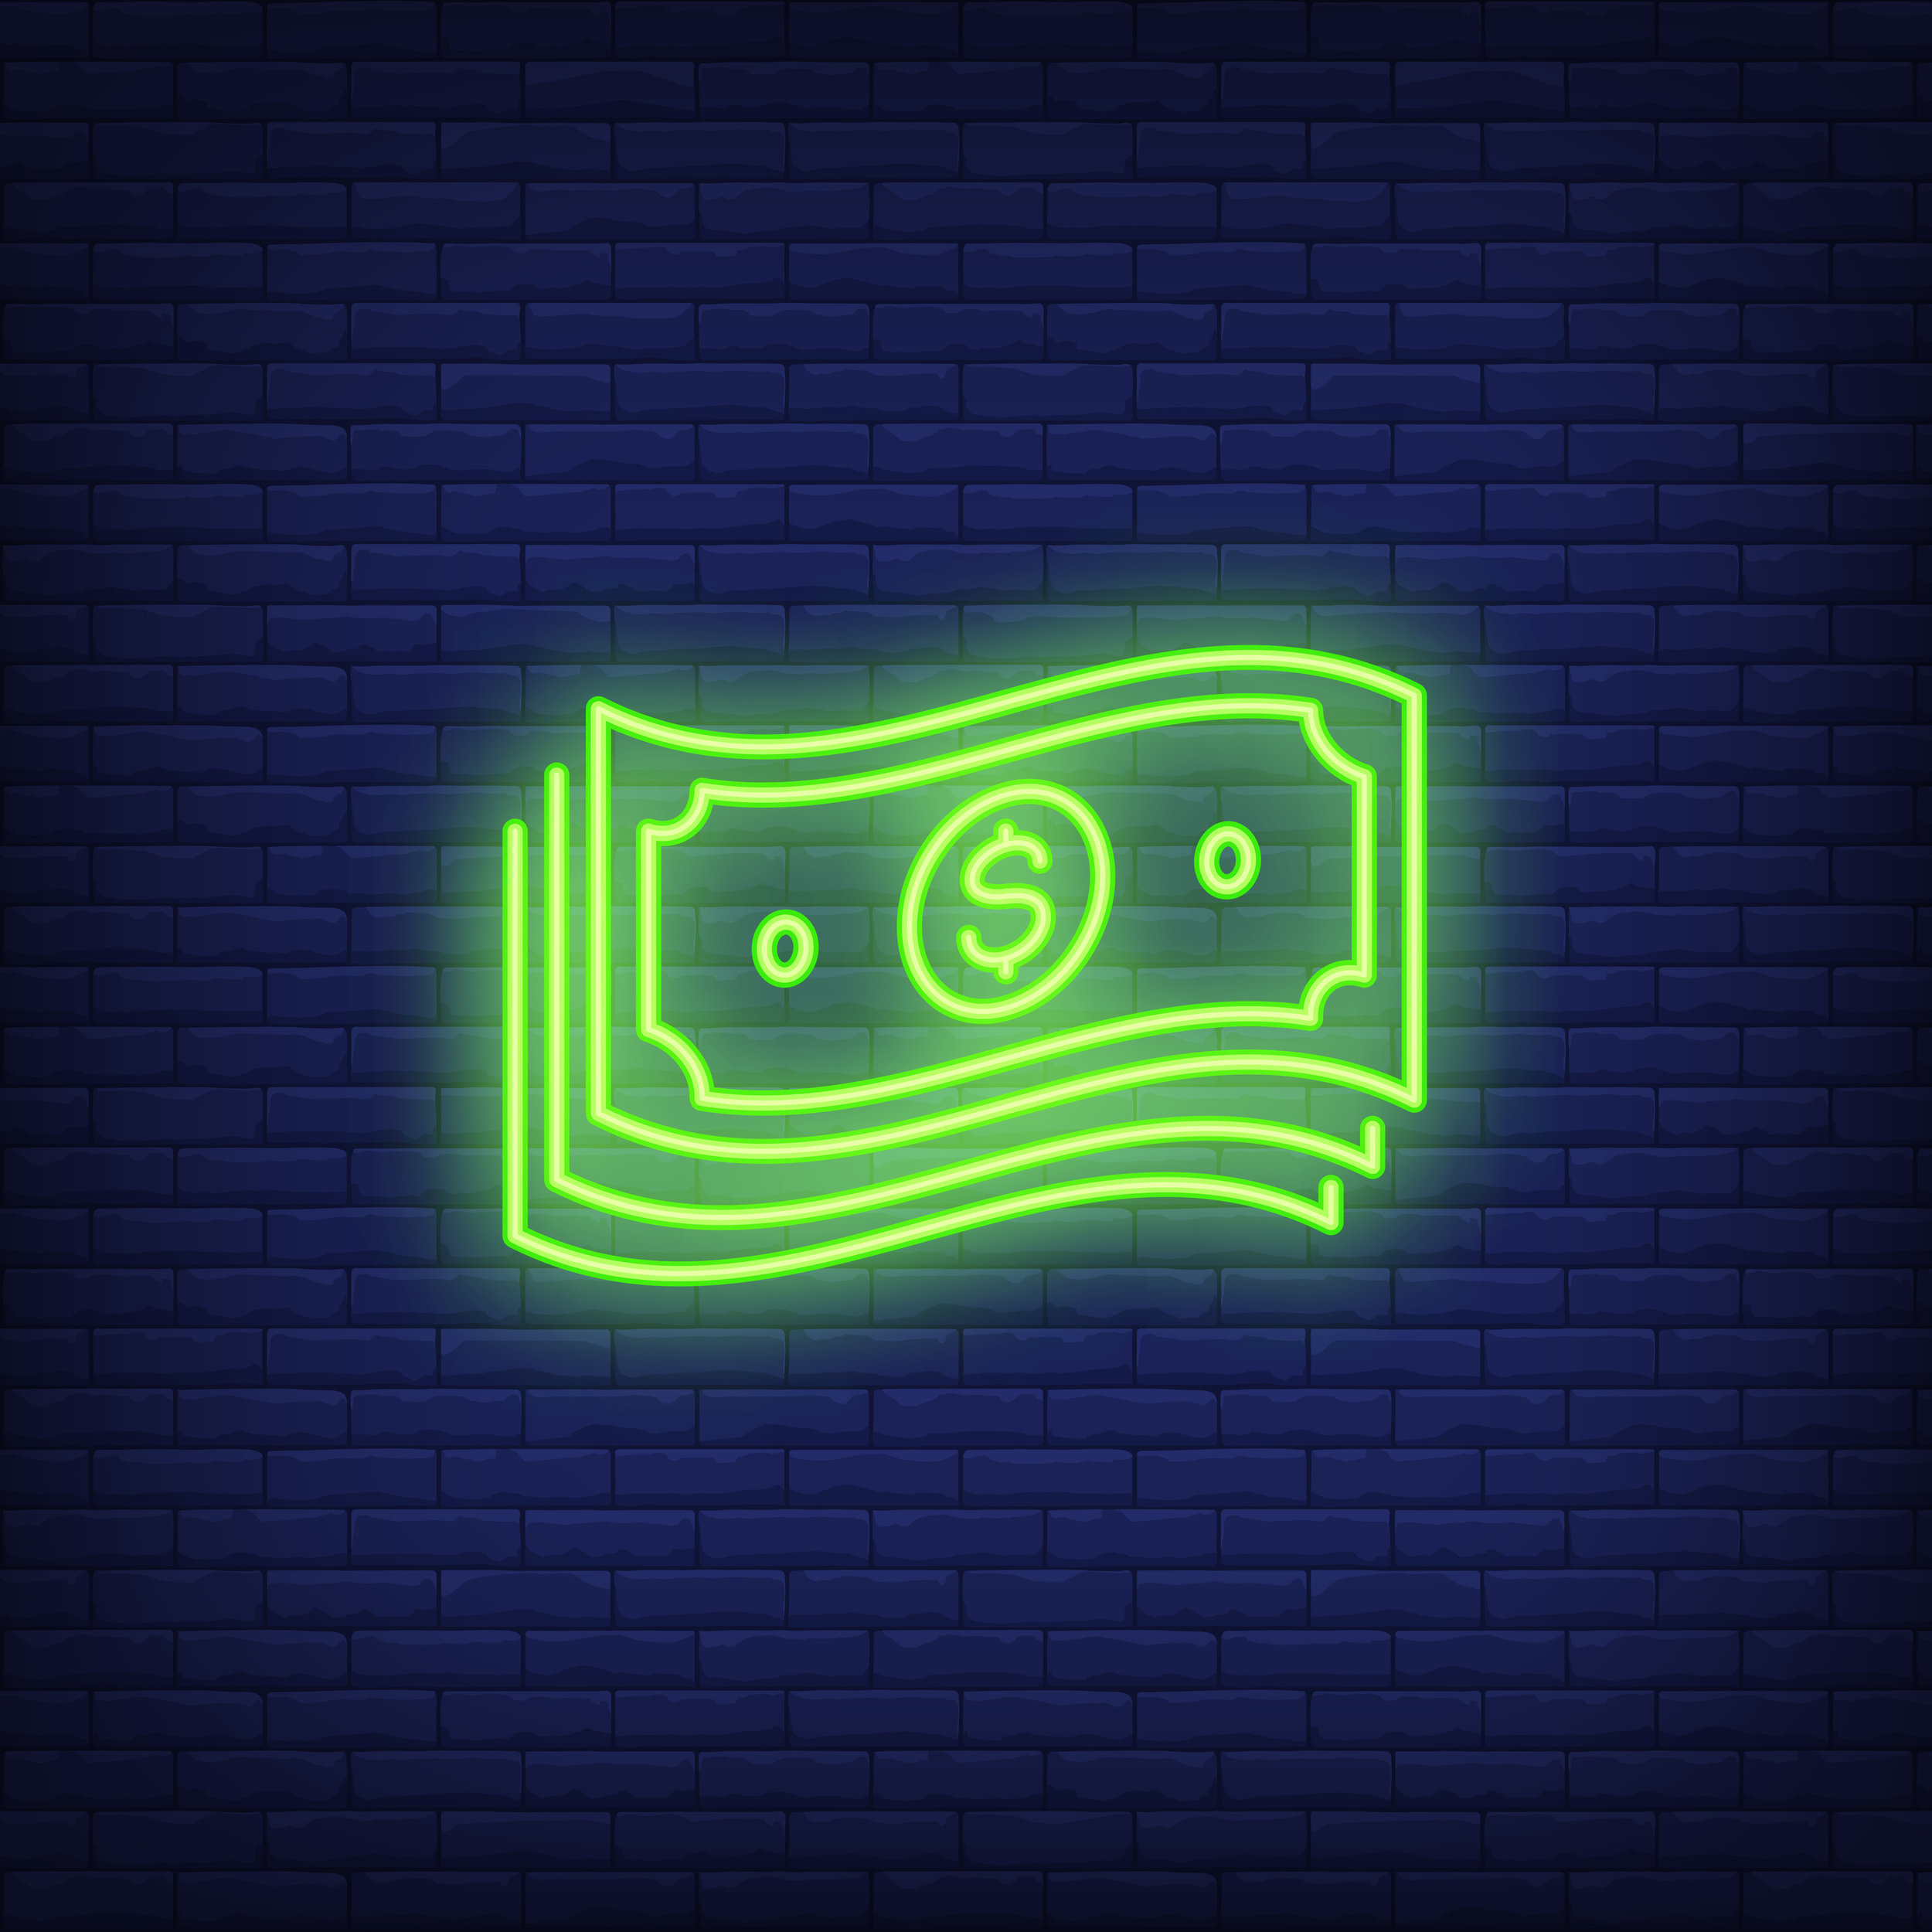 Bundle of dollar bills neon sign